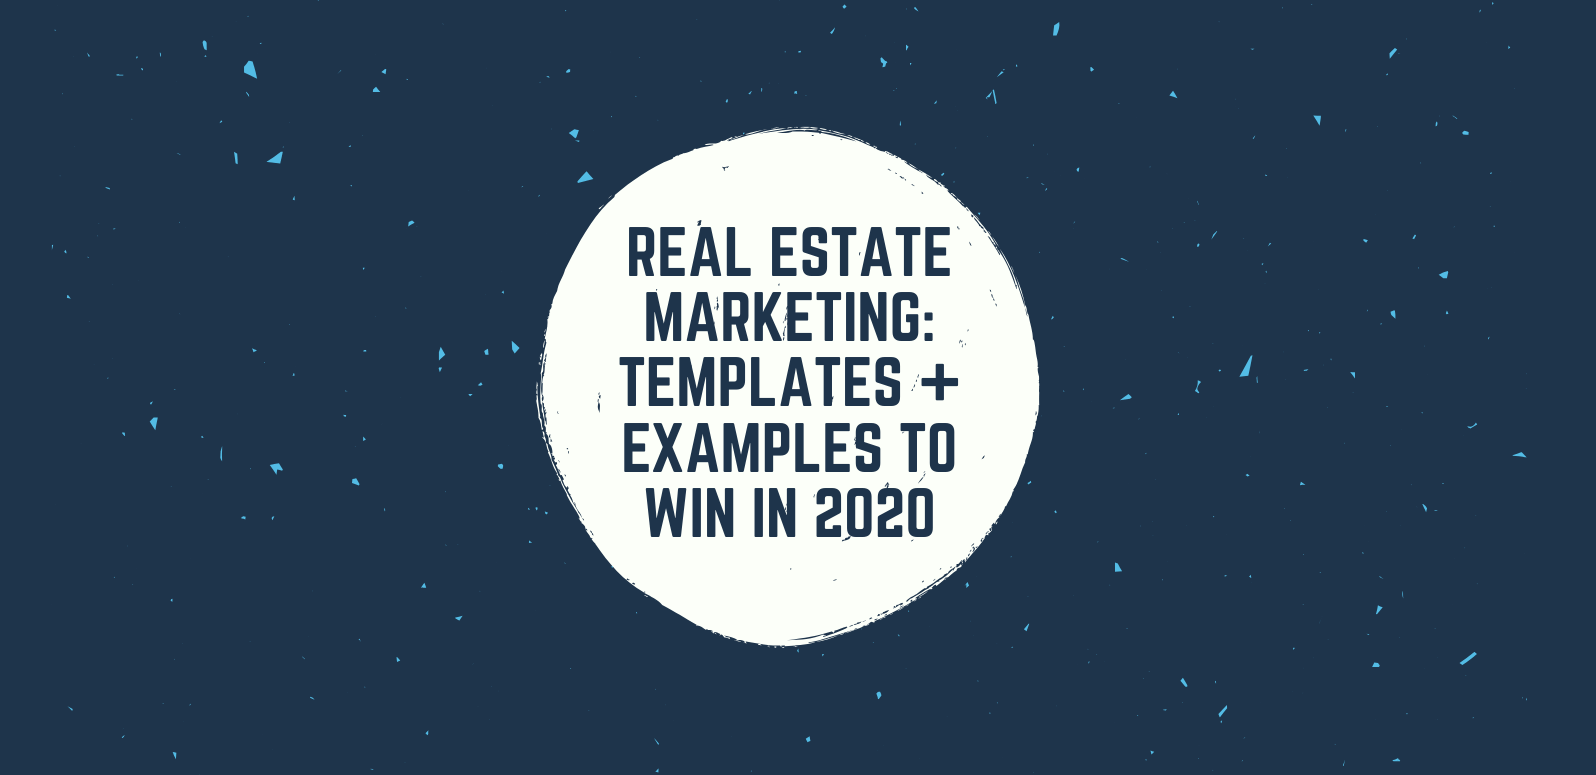 Real Estate Marketing: Templates + Examples to Win in 2020